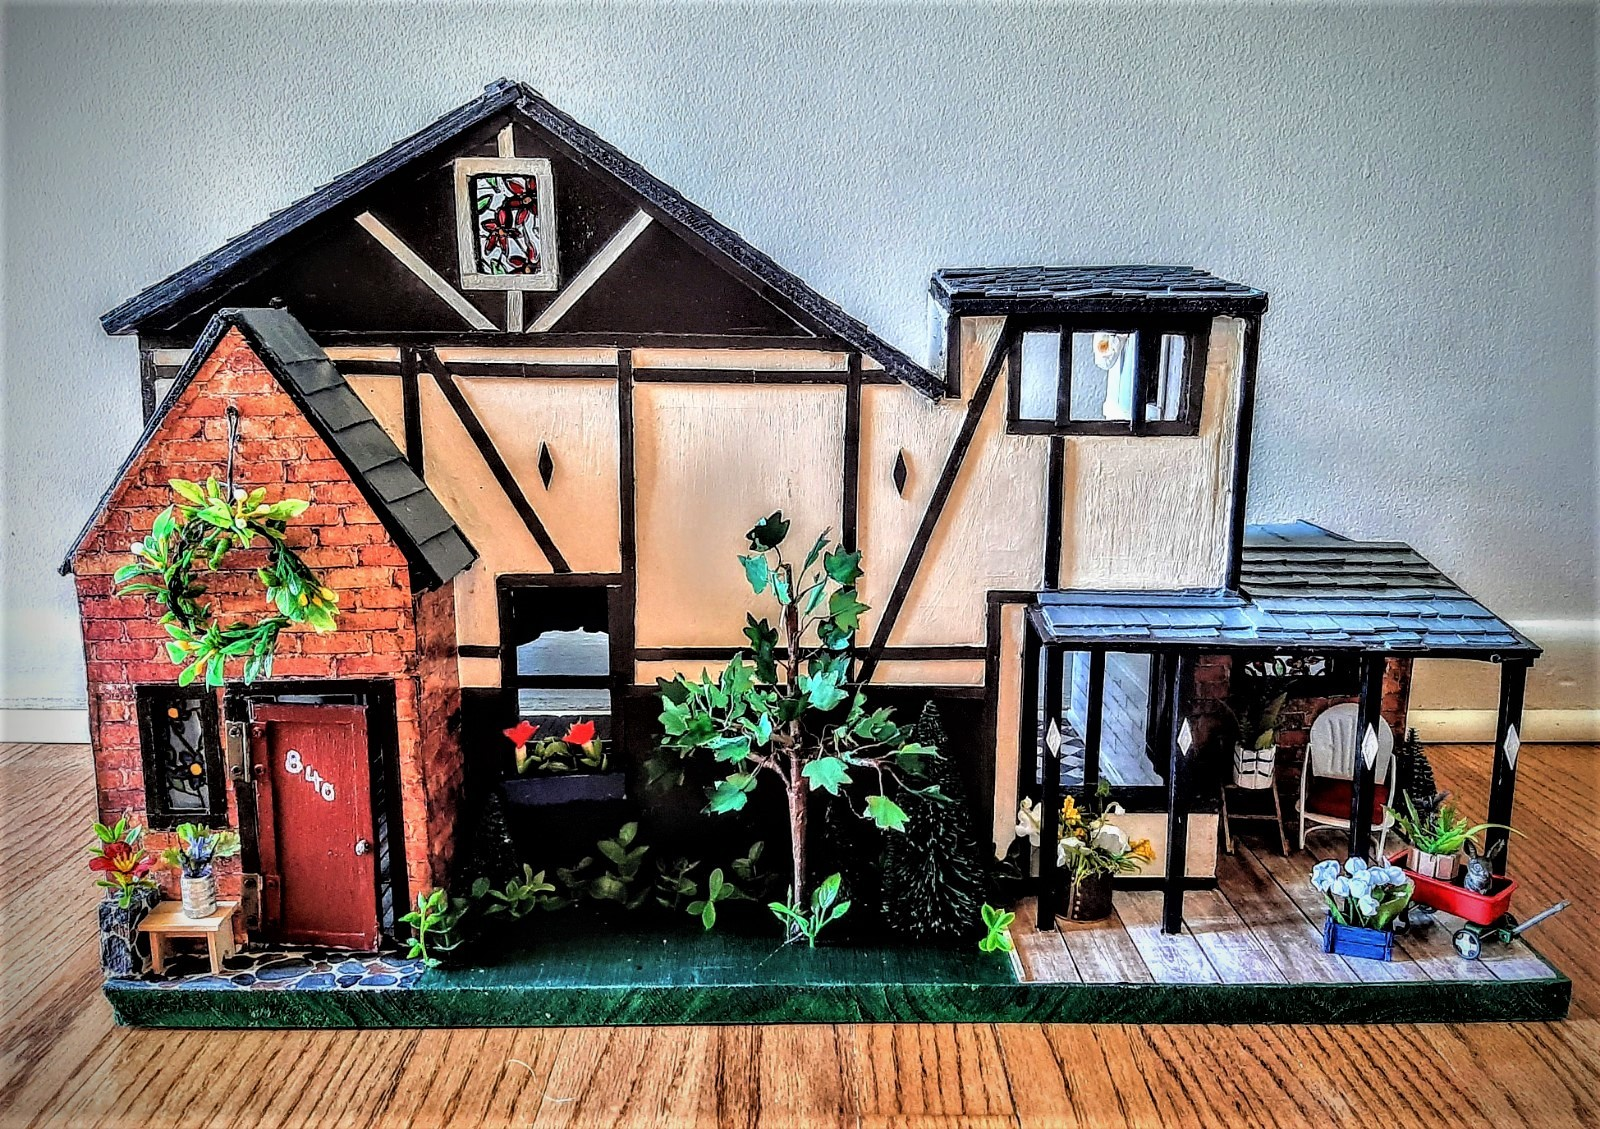 Three- dimensional wood replica of a tudor style house. Inside images are of the kitchen, living room, and upstairs.